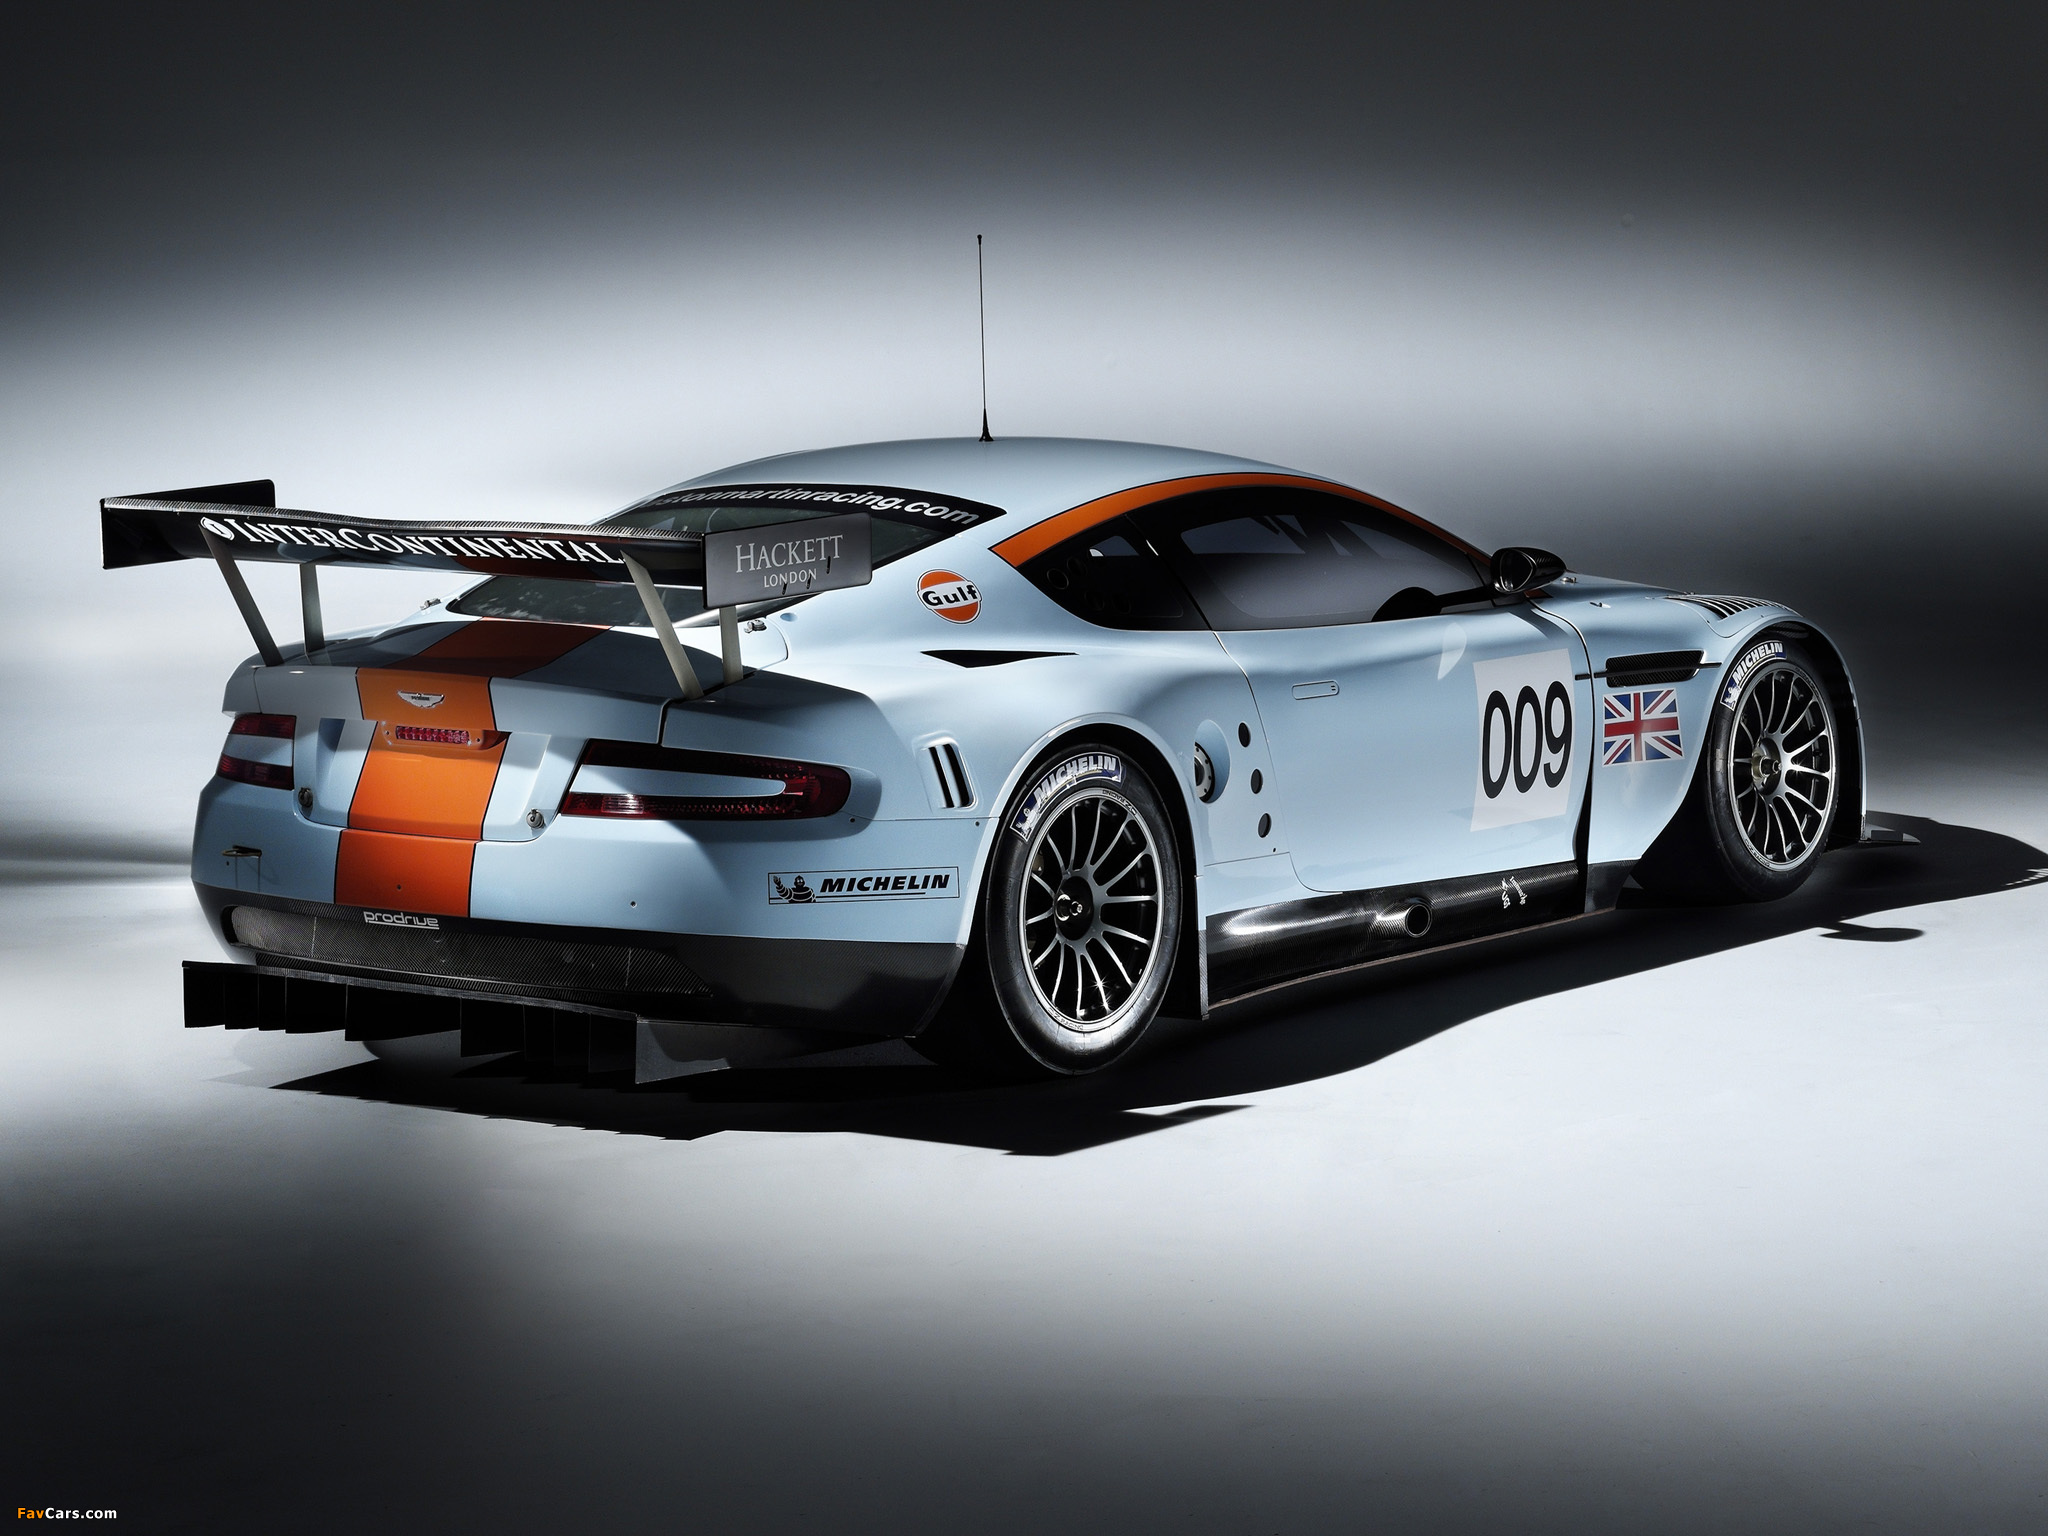 2008 aston martin db9 with Aston Martin Dbr9 Gulf Oil Livery 2008 Wallpapers 146602 on Prdview big 258418 moreover The Cars Of Kanye West additionally Fisker Surf besides Isuzu D Max additionally 60289.